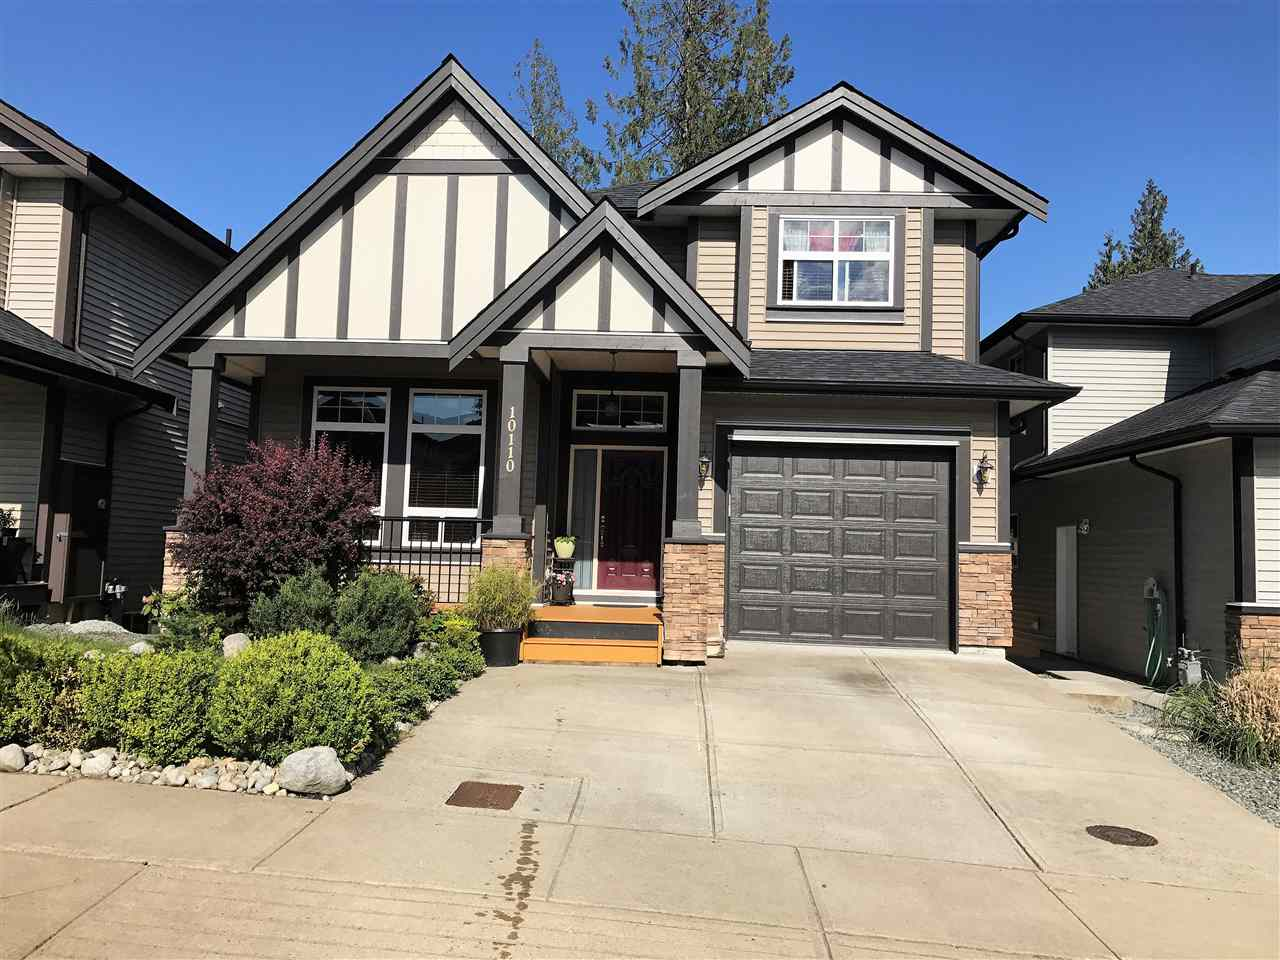 10110 242 STREET, Maple Ridge